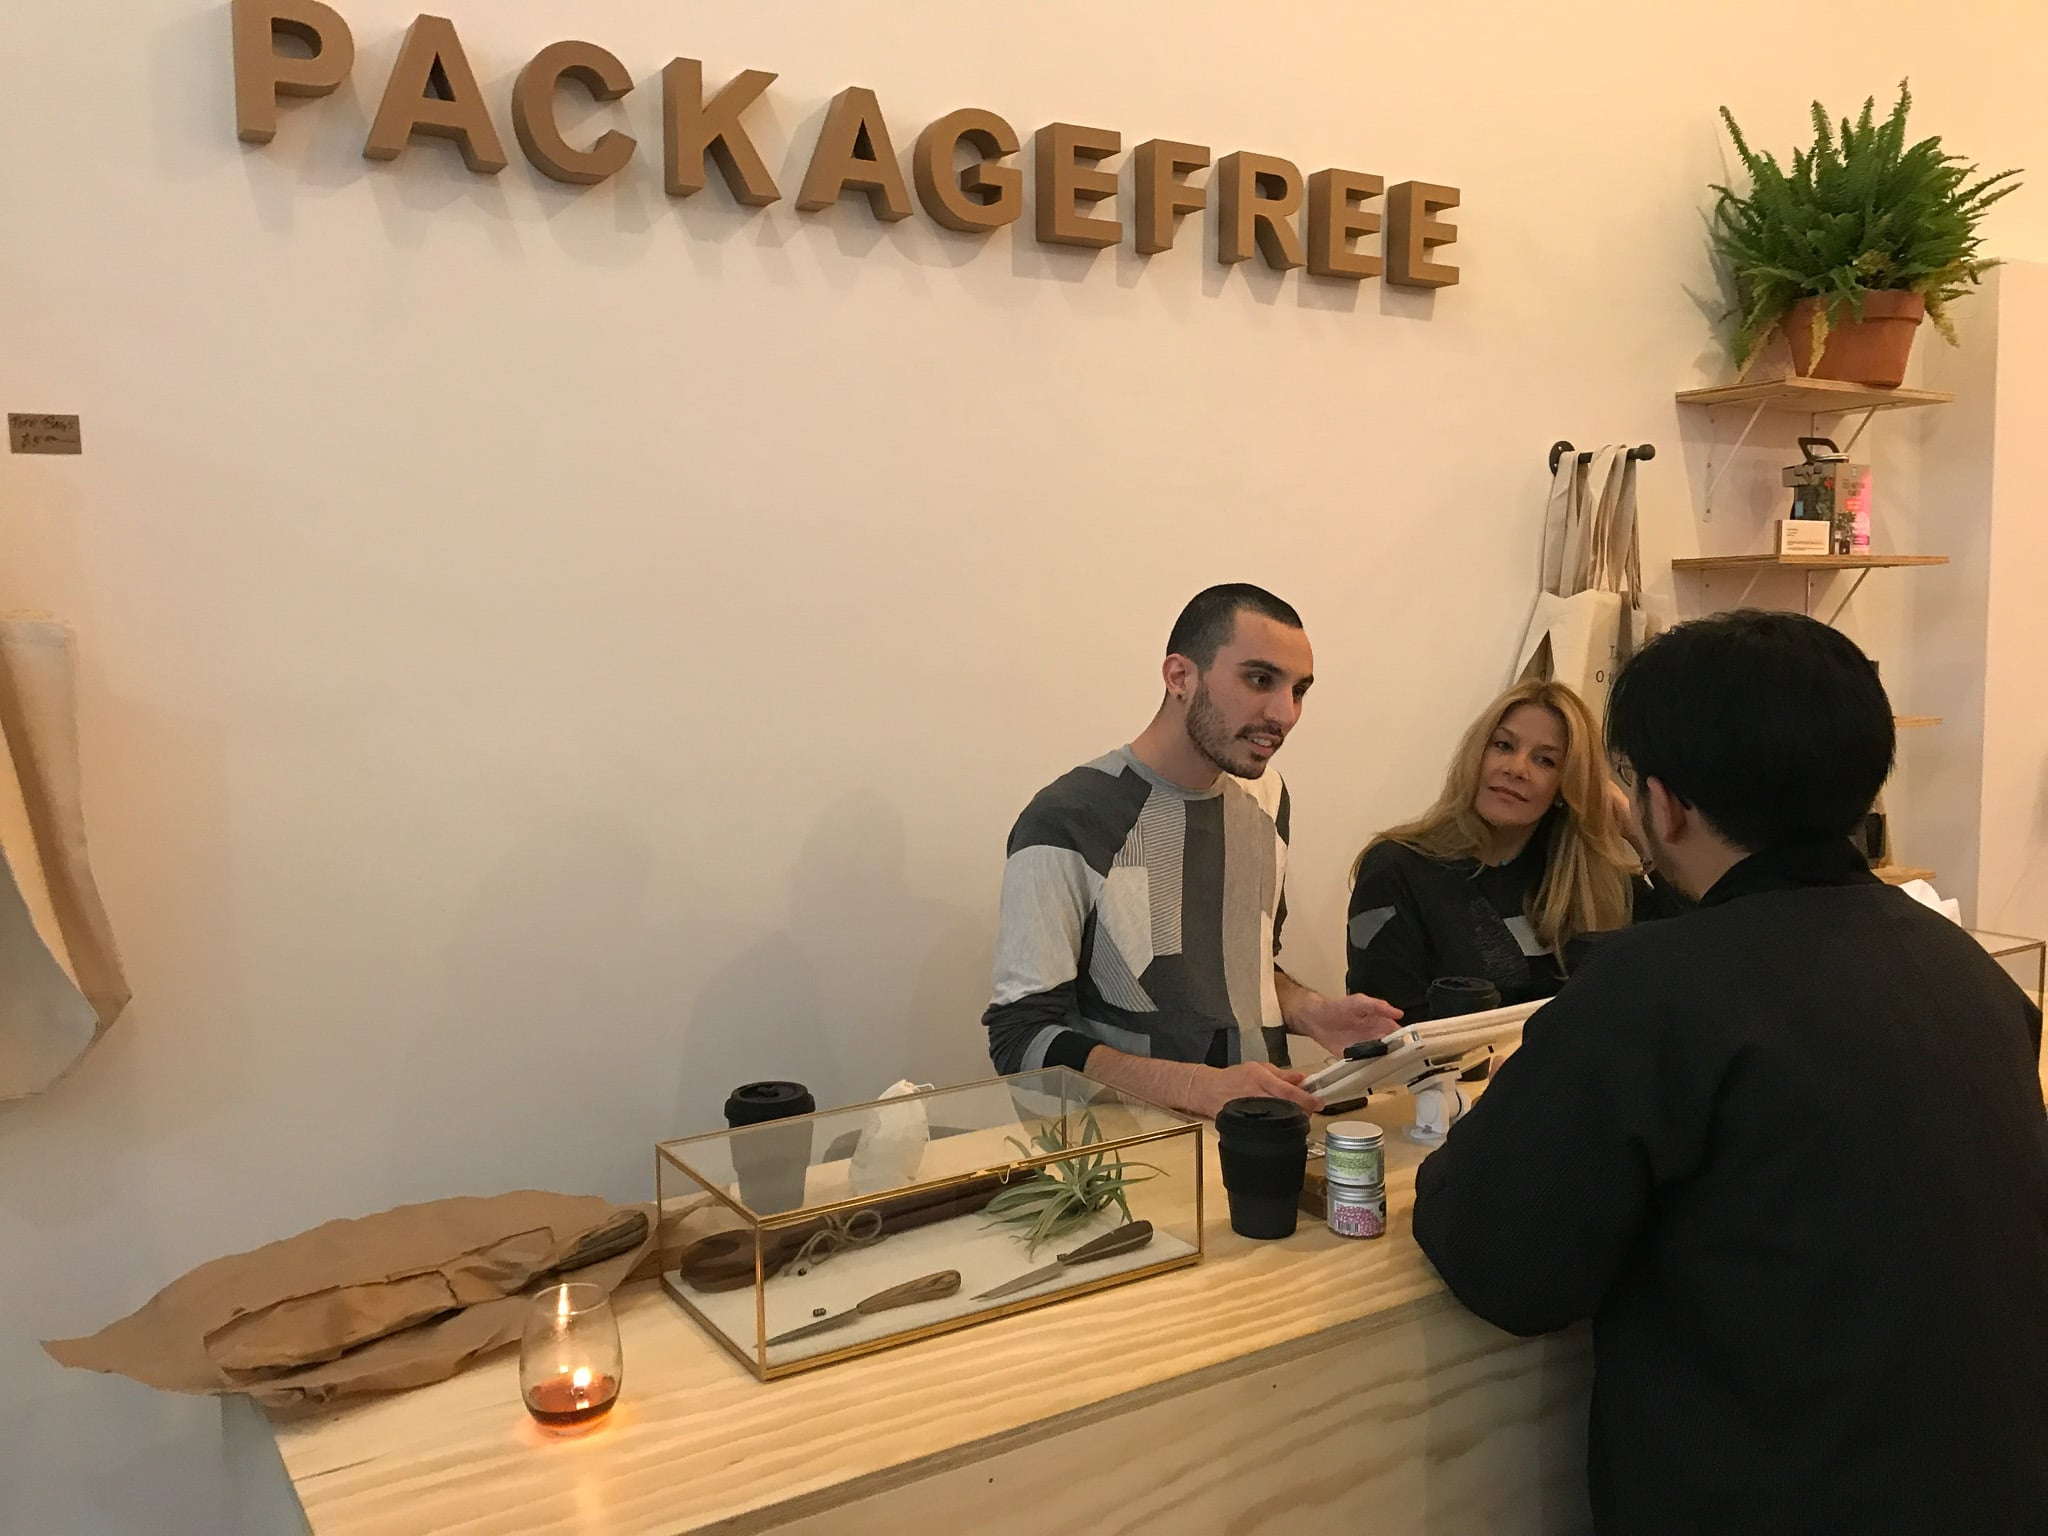 The Package Free Shop